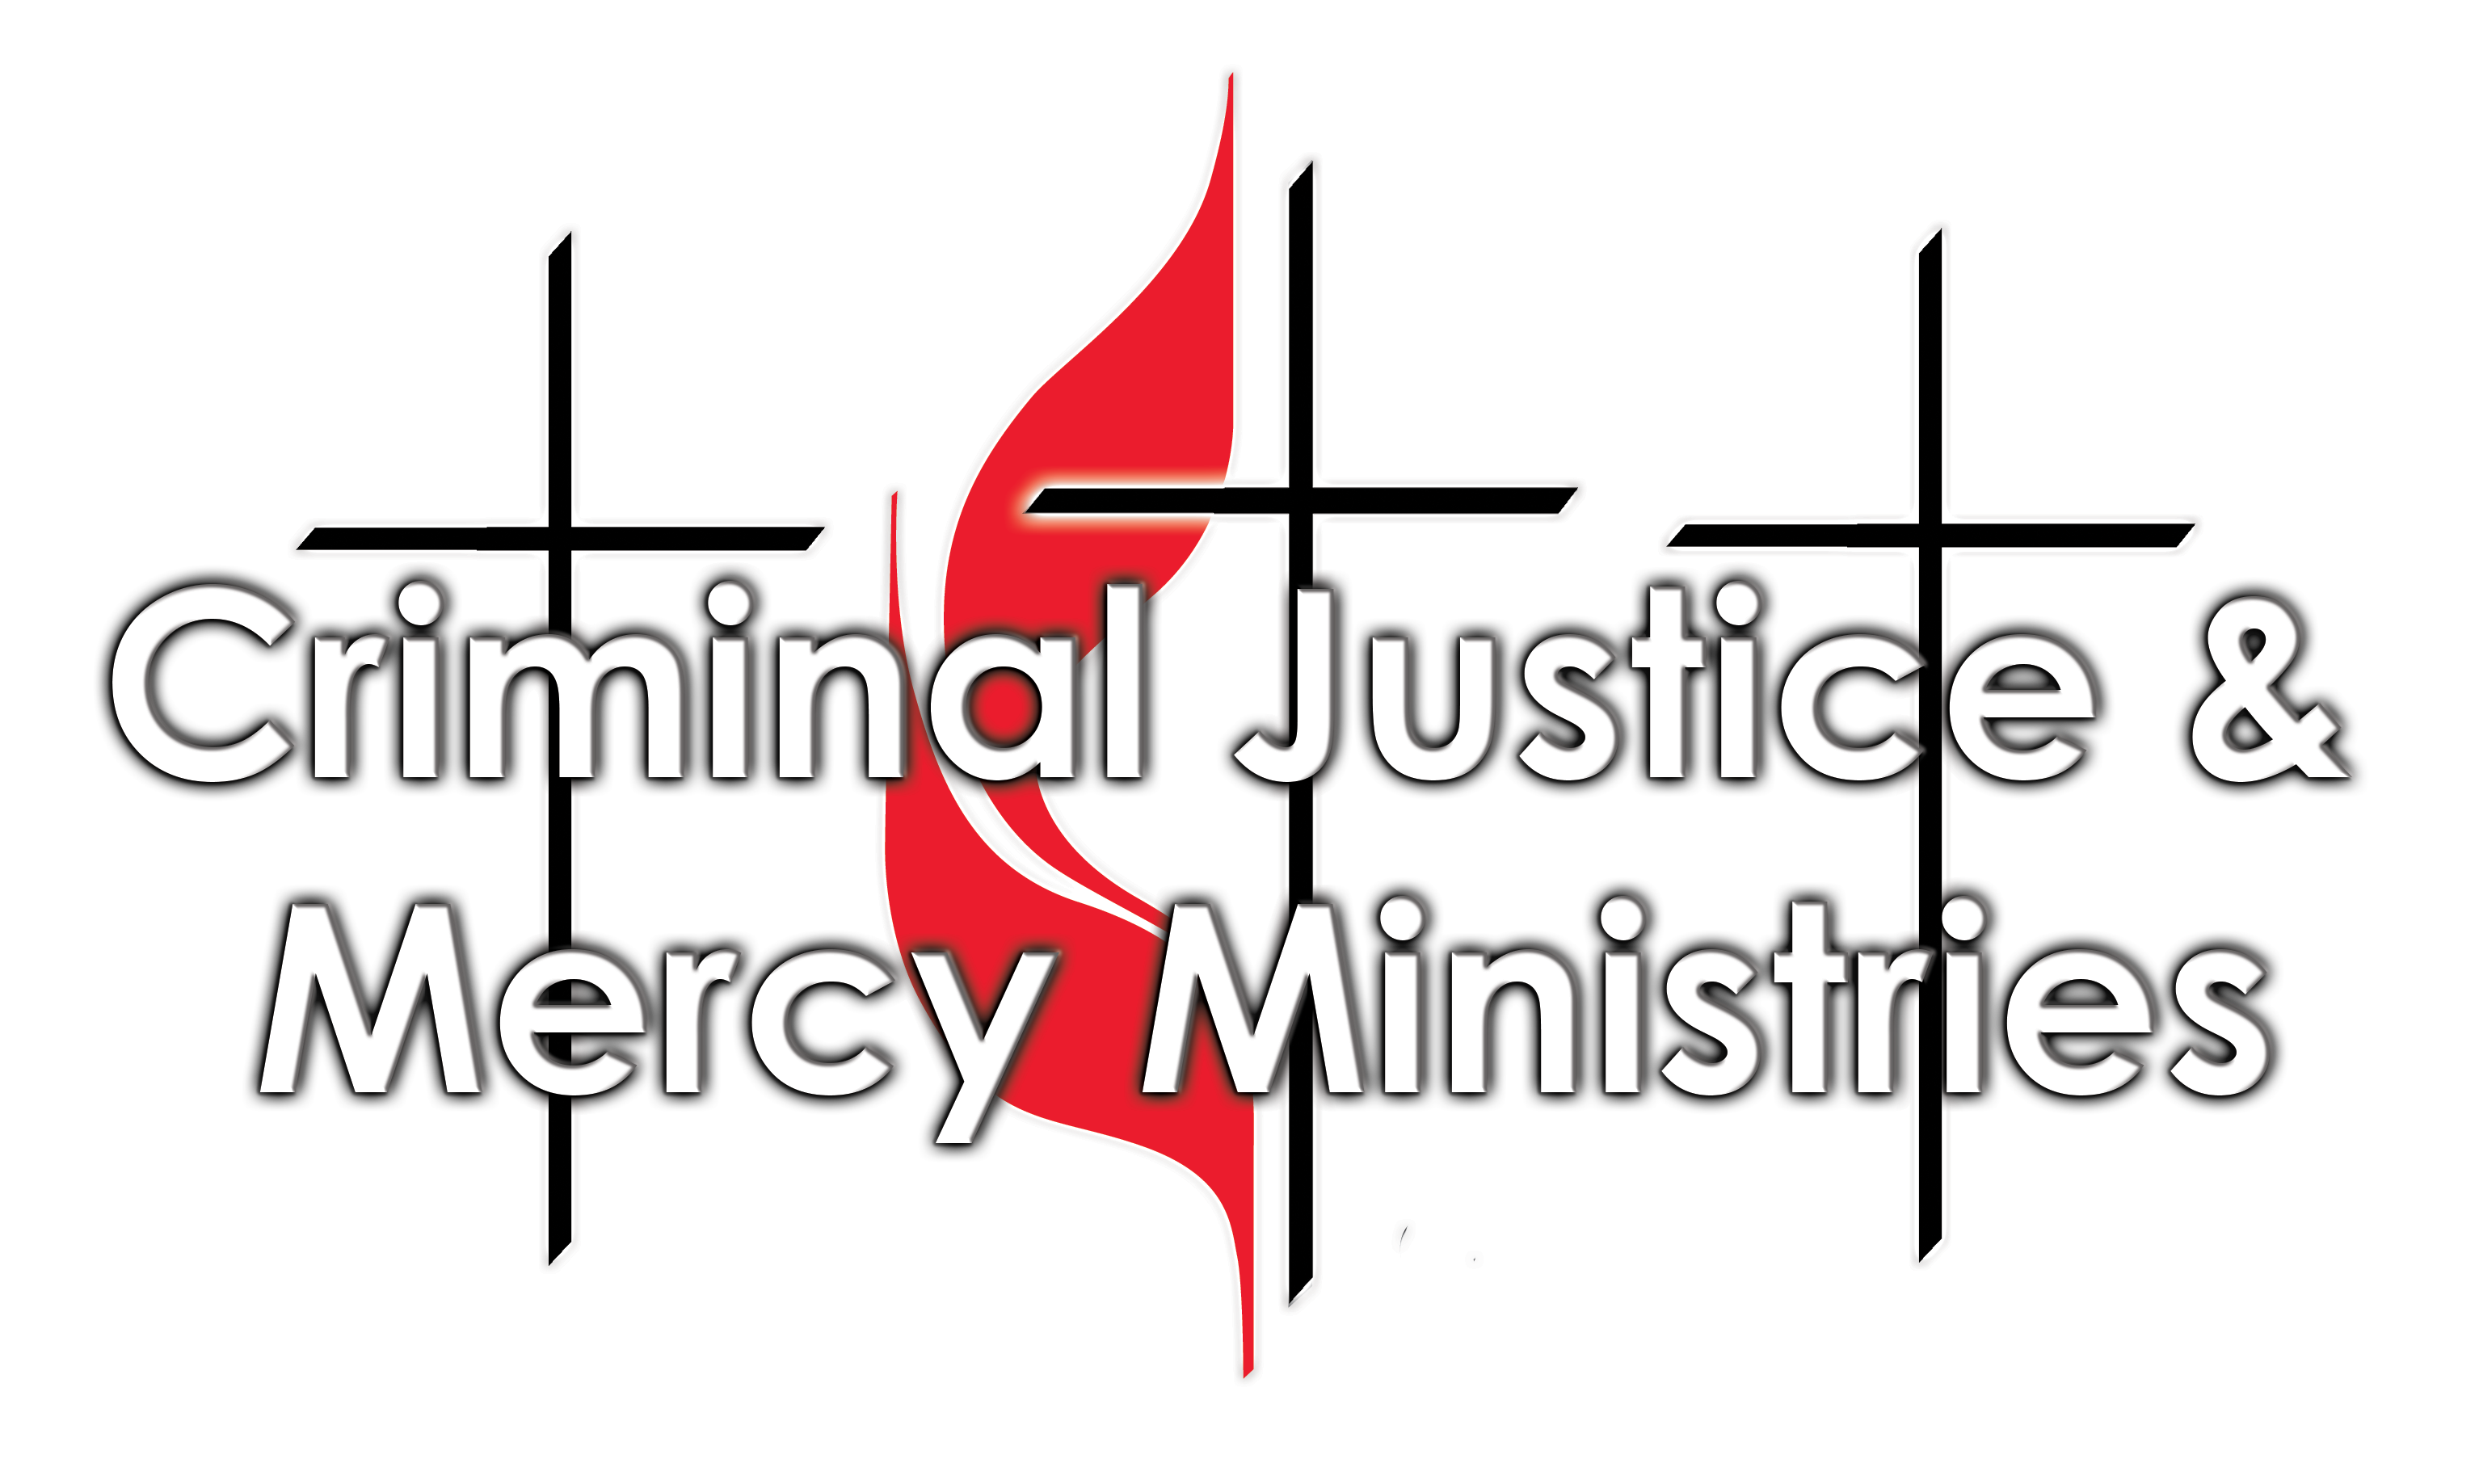 Criminal Justice and Mercy Ministries